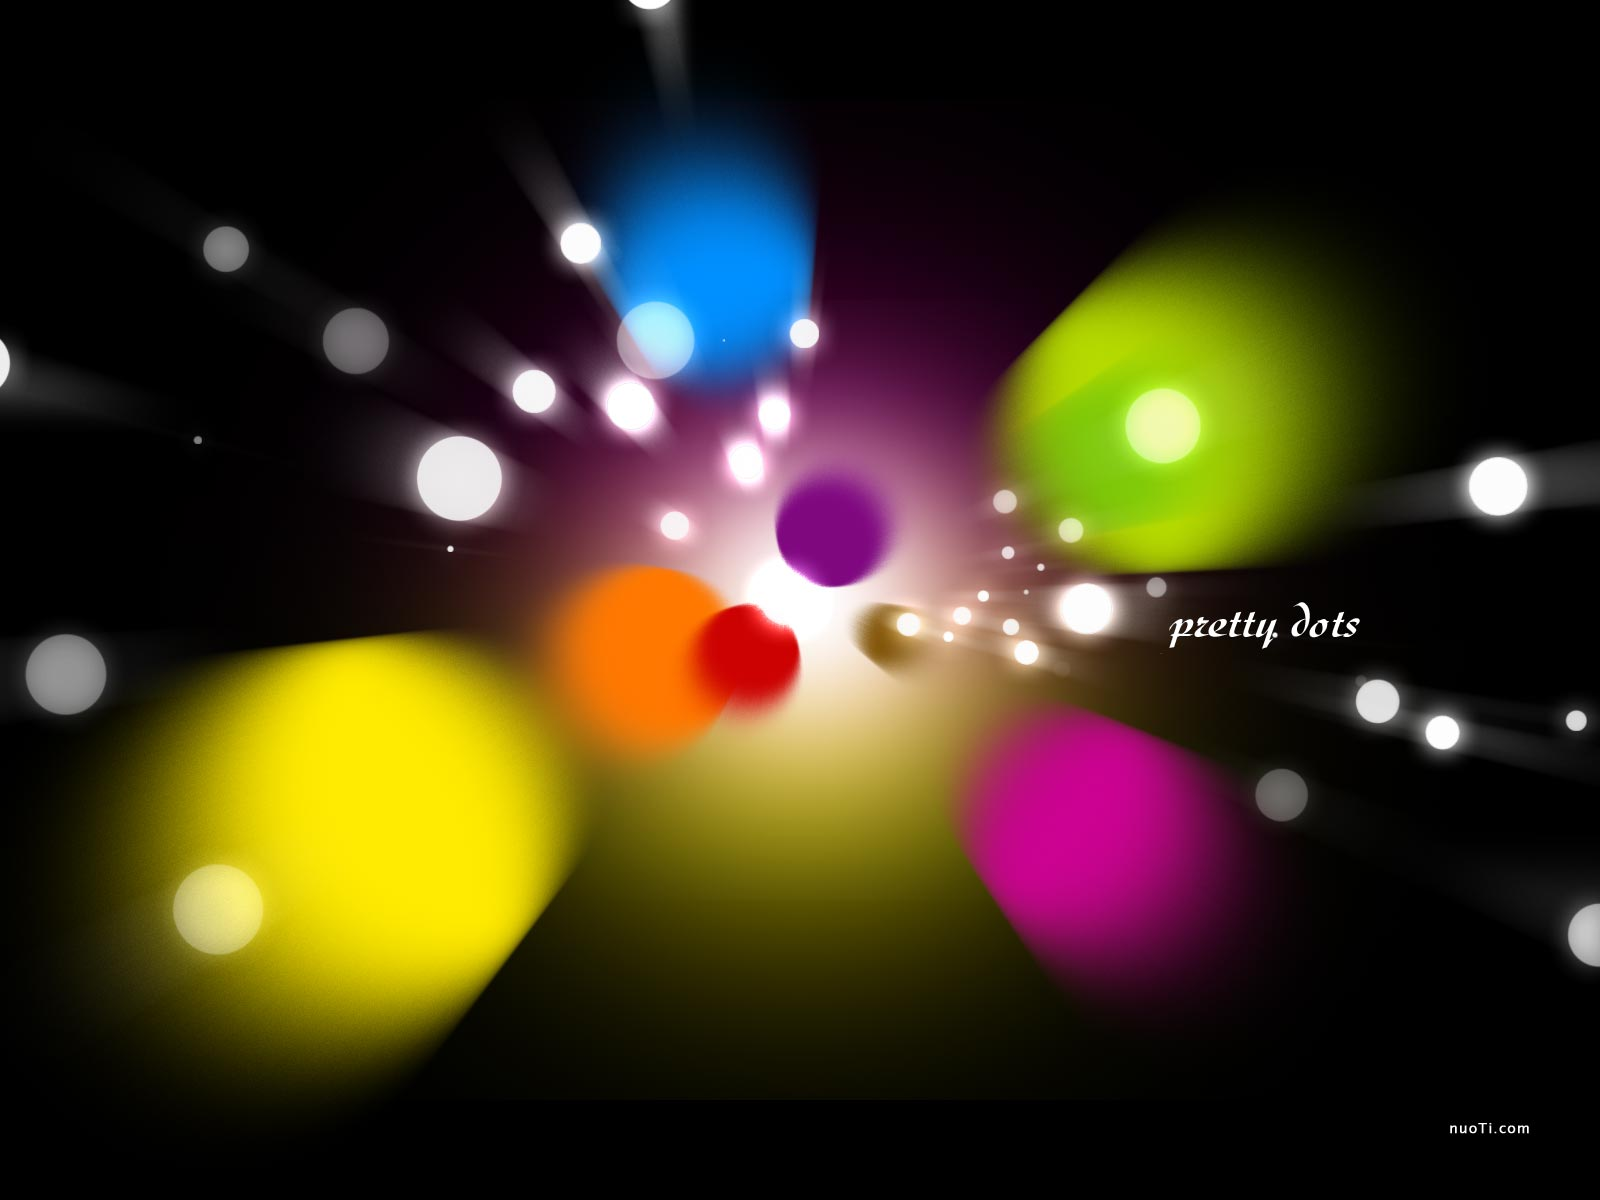 Colorful blasting polka dot. This background clipart looks great for desktop